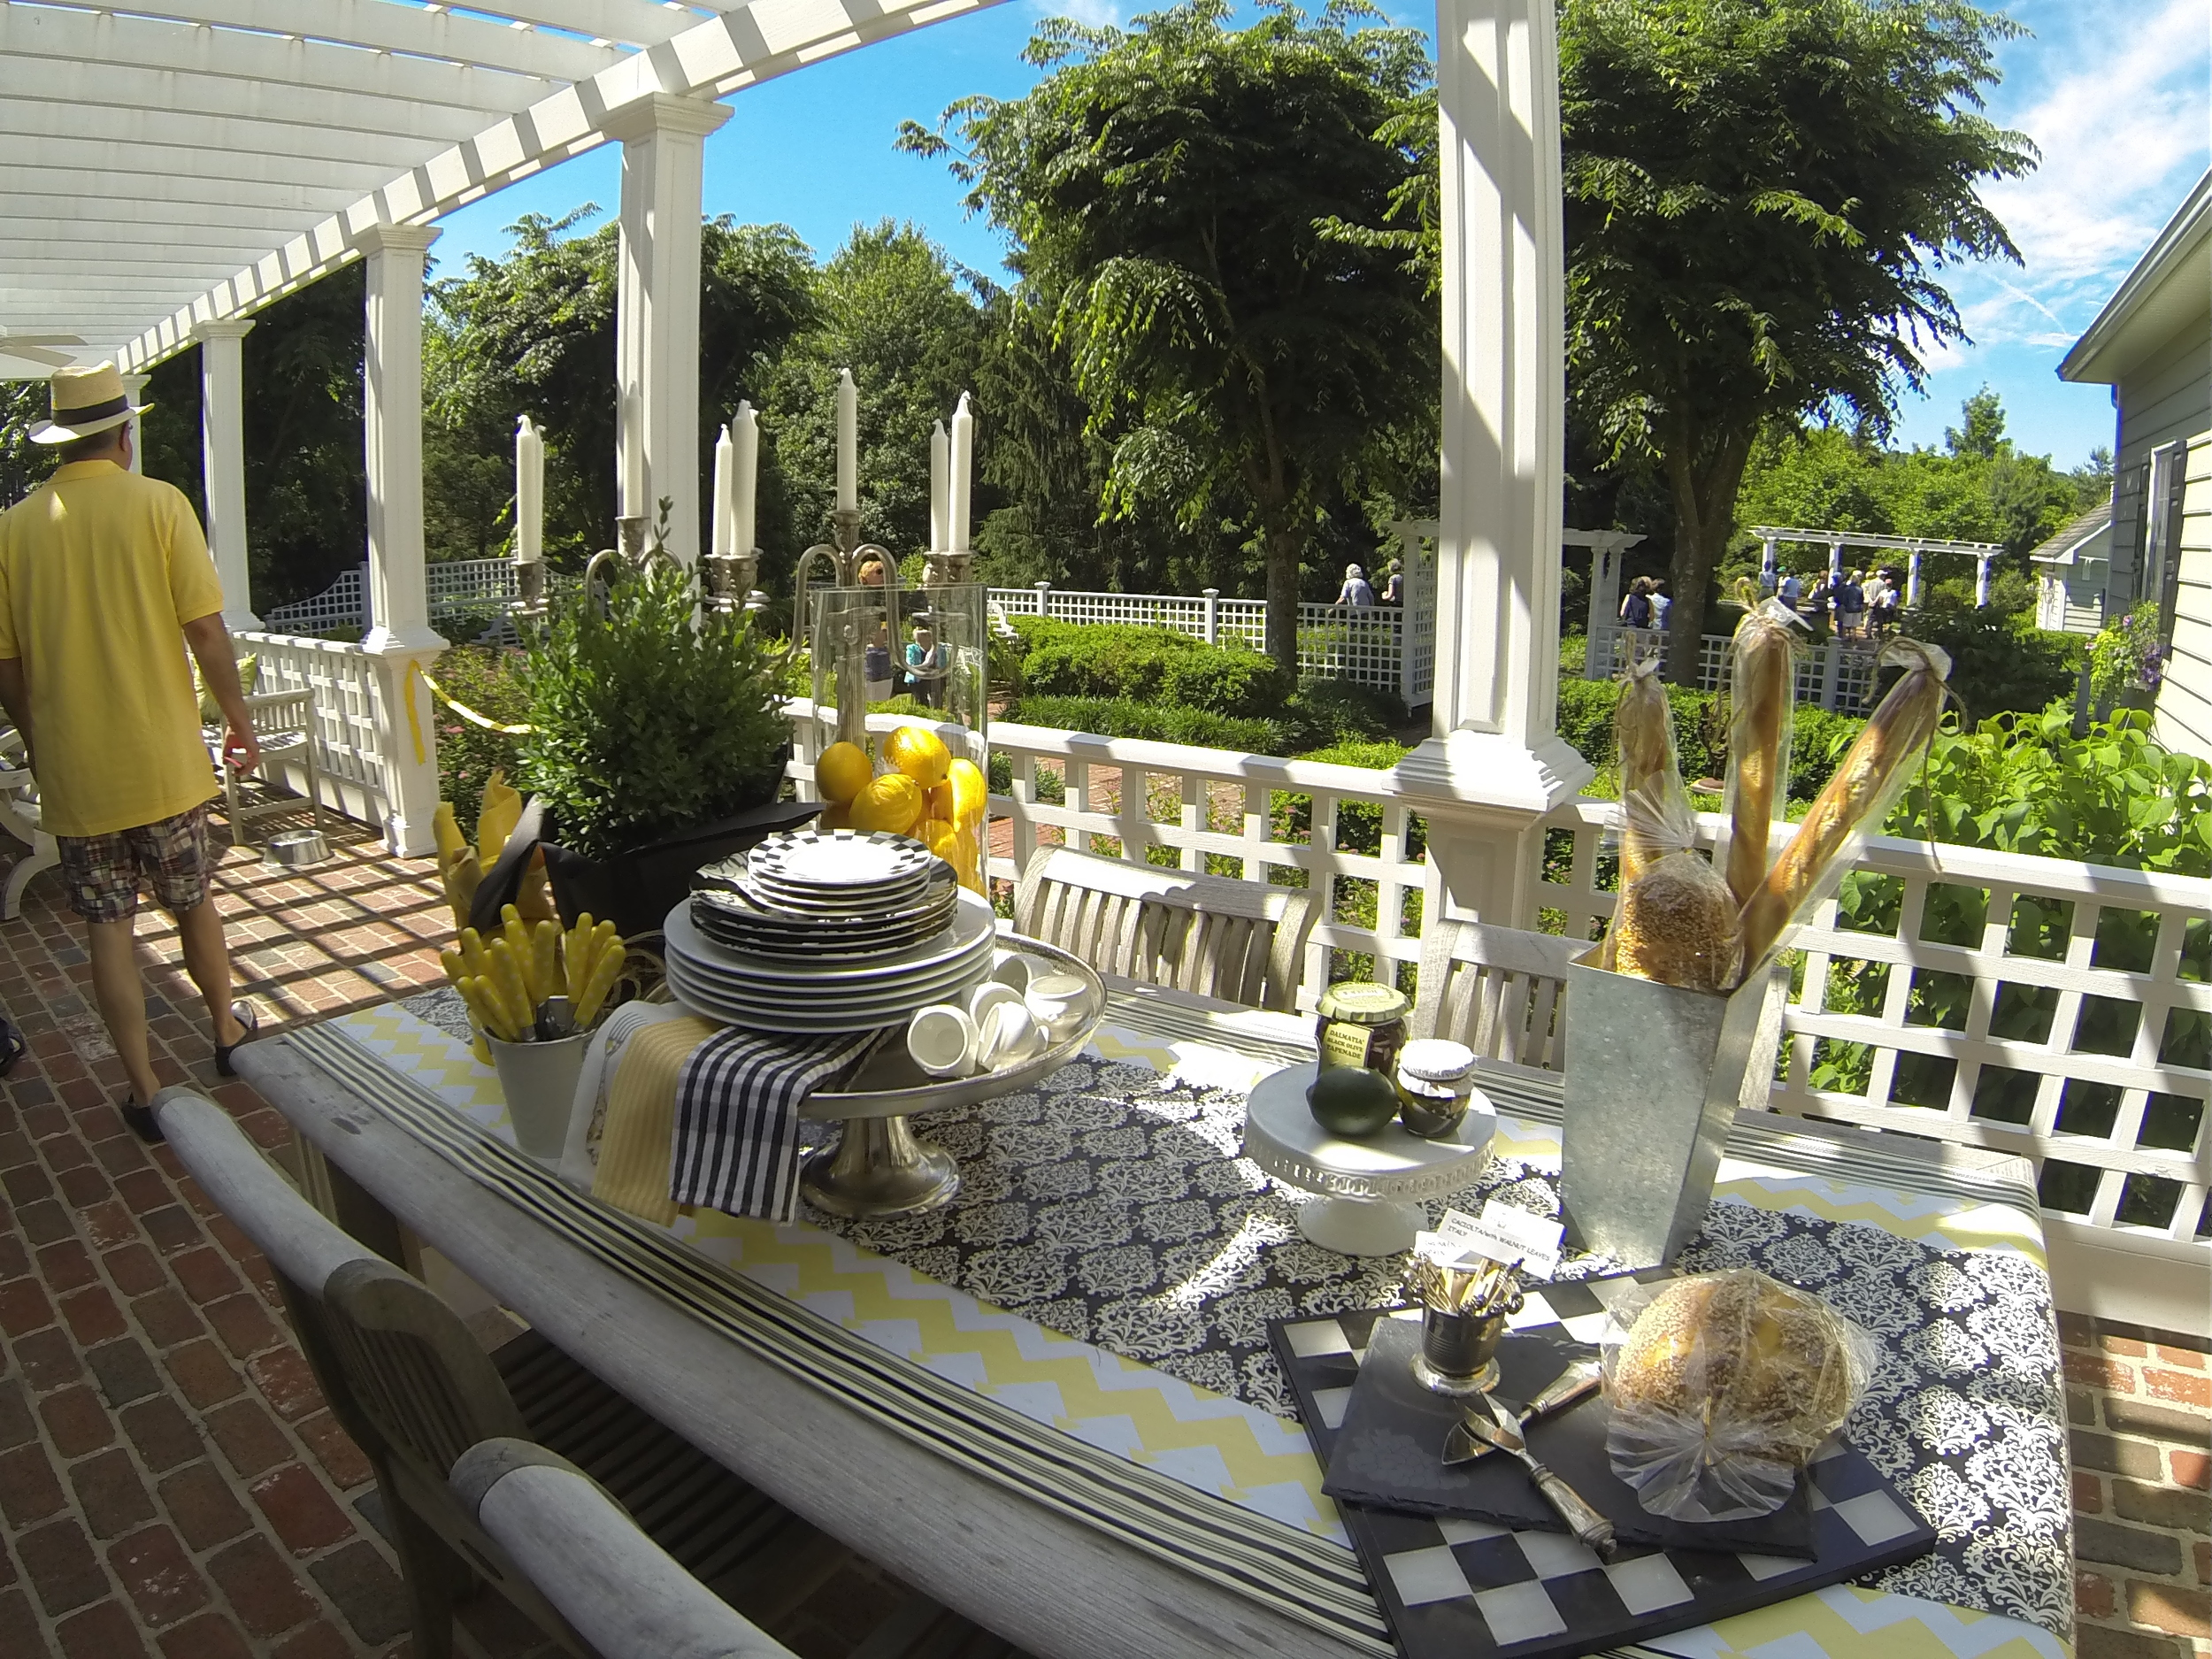 Styled back porch highlights a summer brunch gathering underneath the pergola.